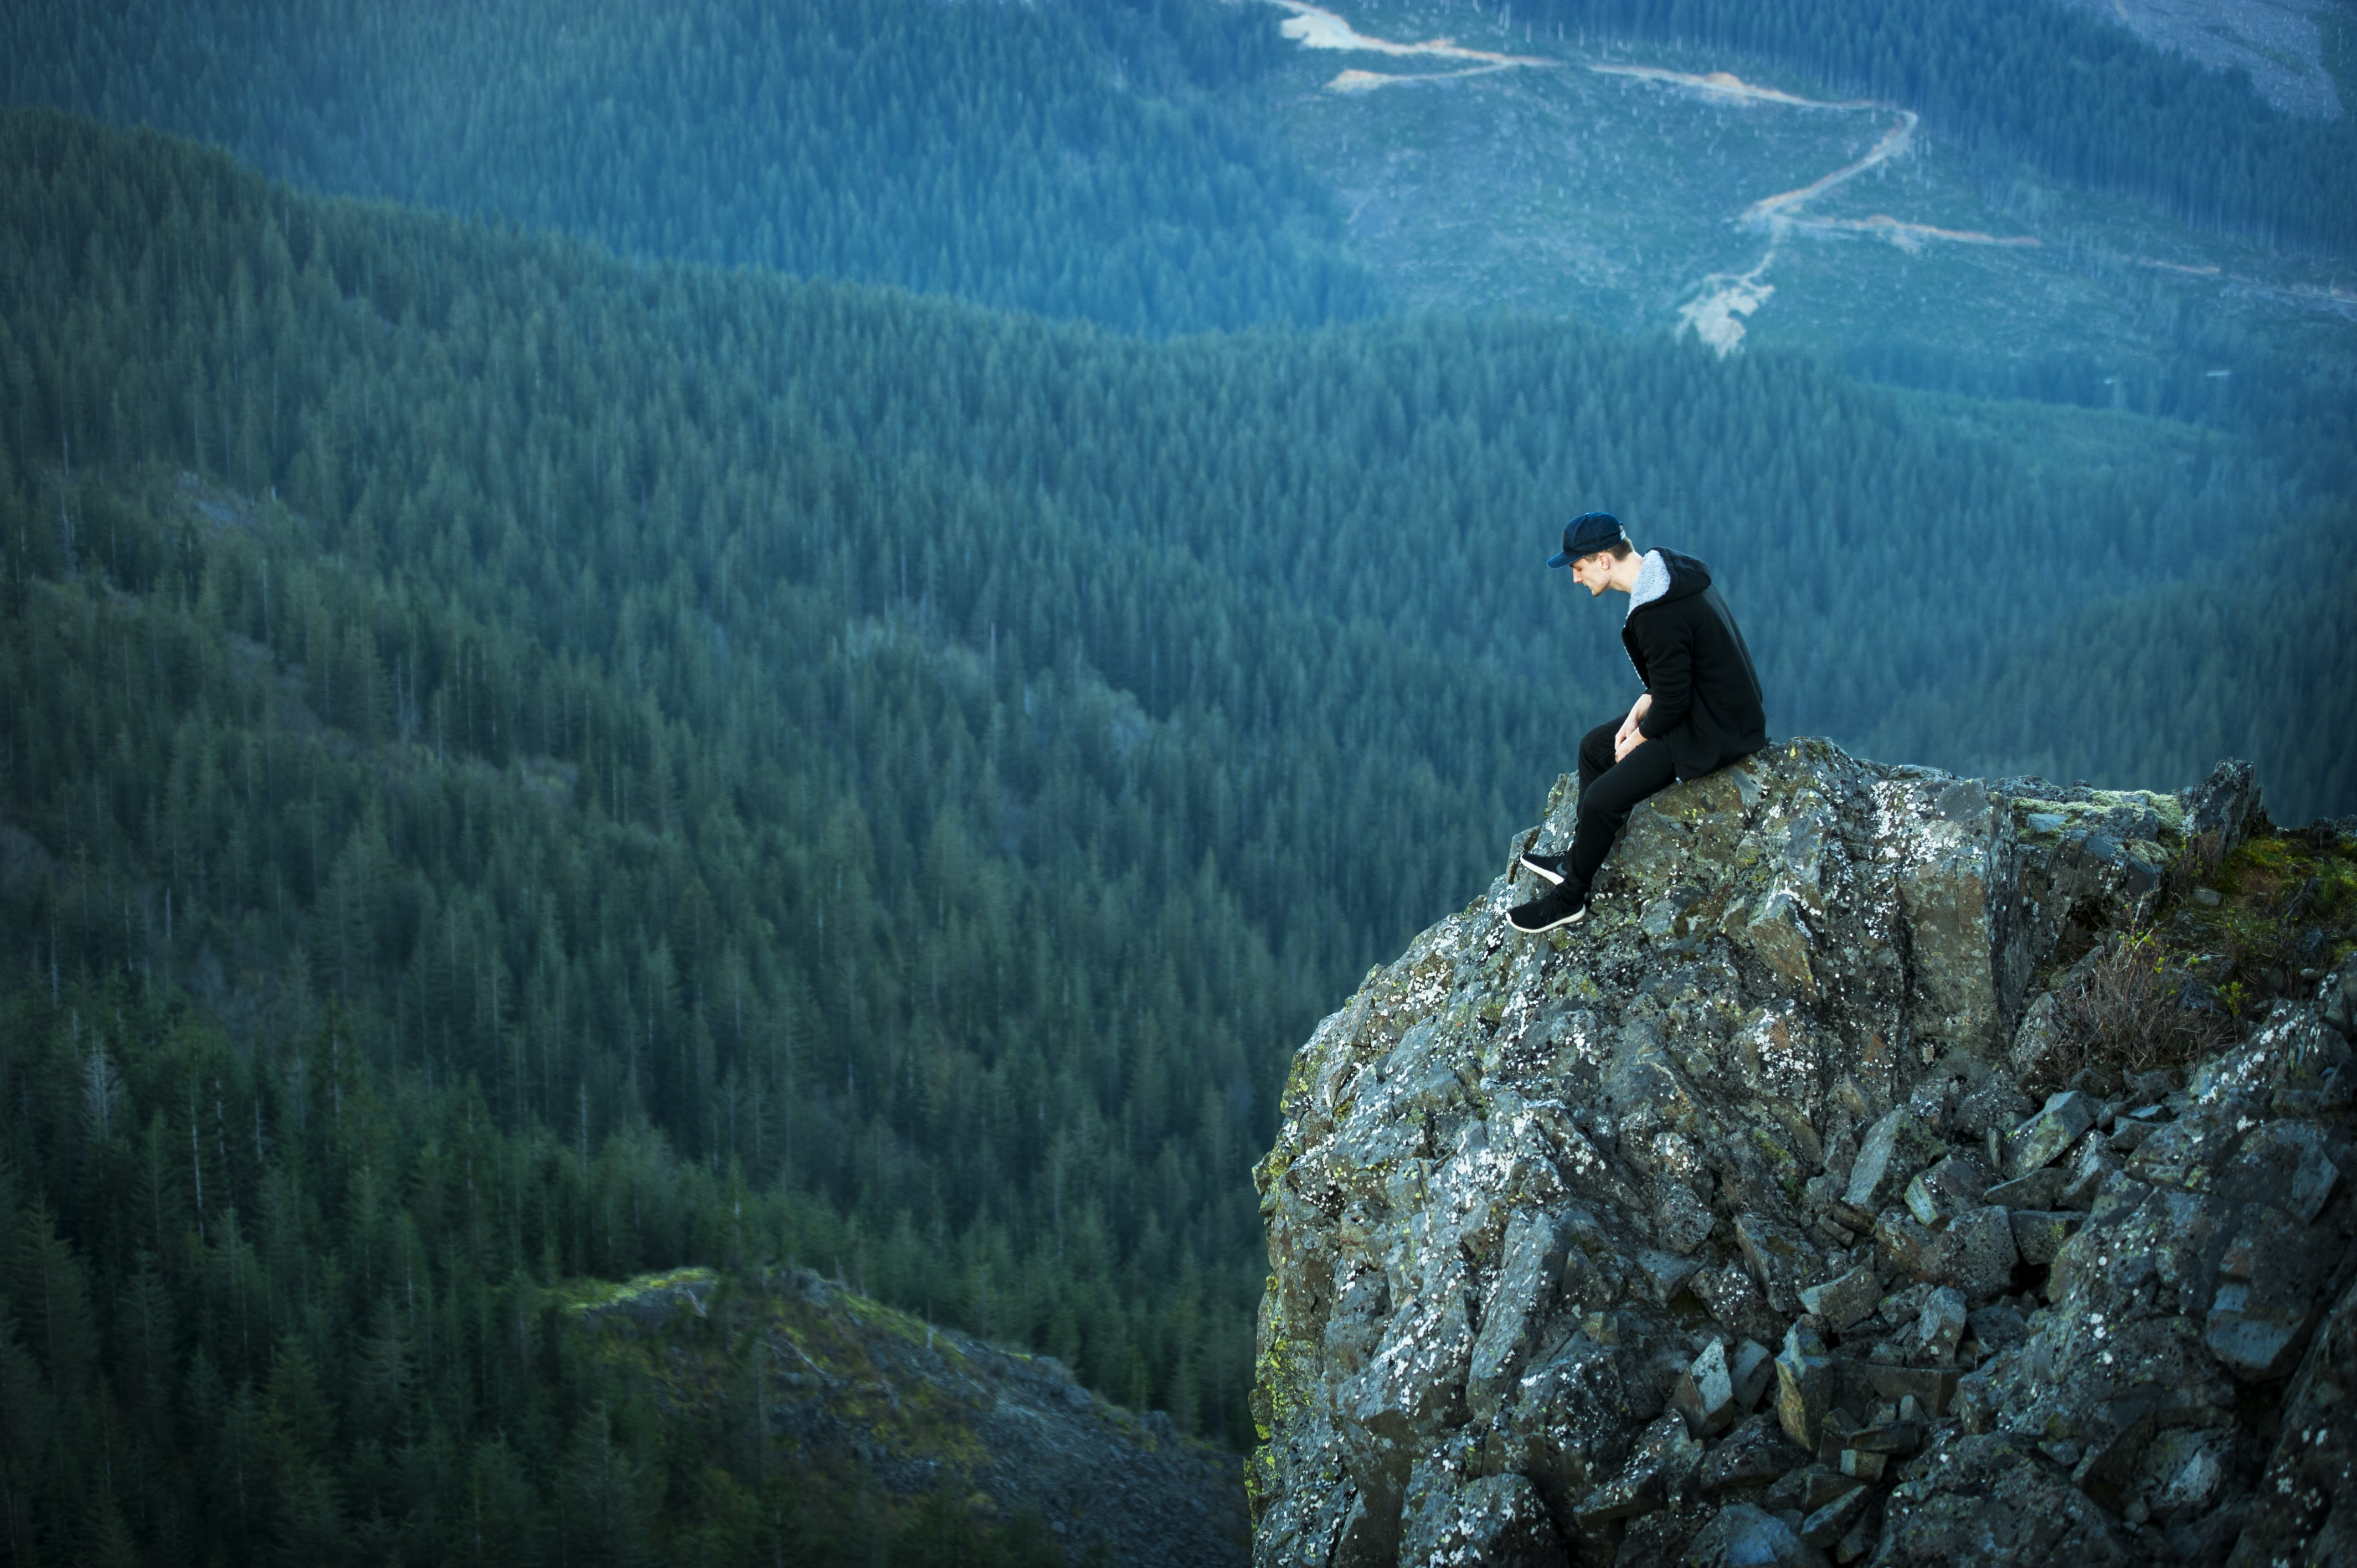 A man in a cap sitting on a ledge overlooking wooded hills